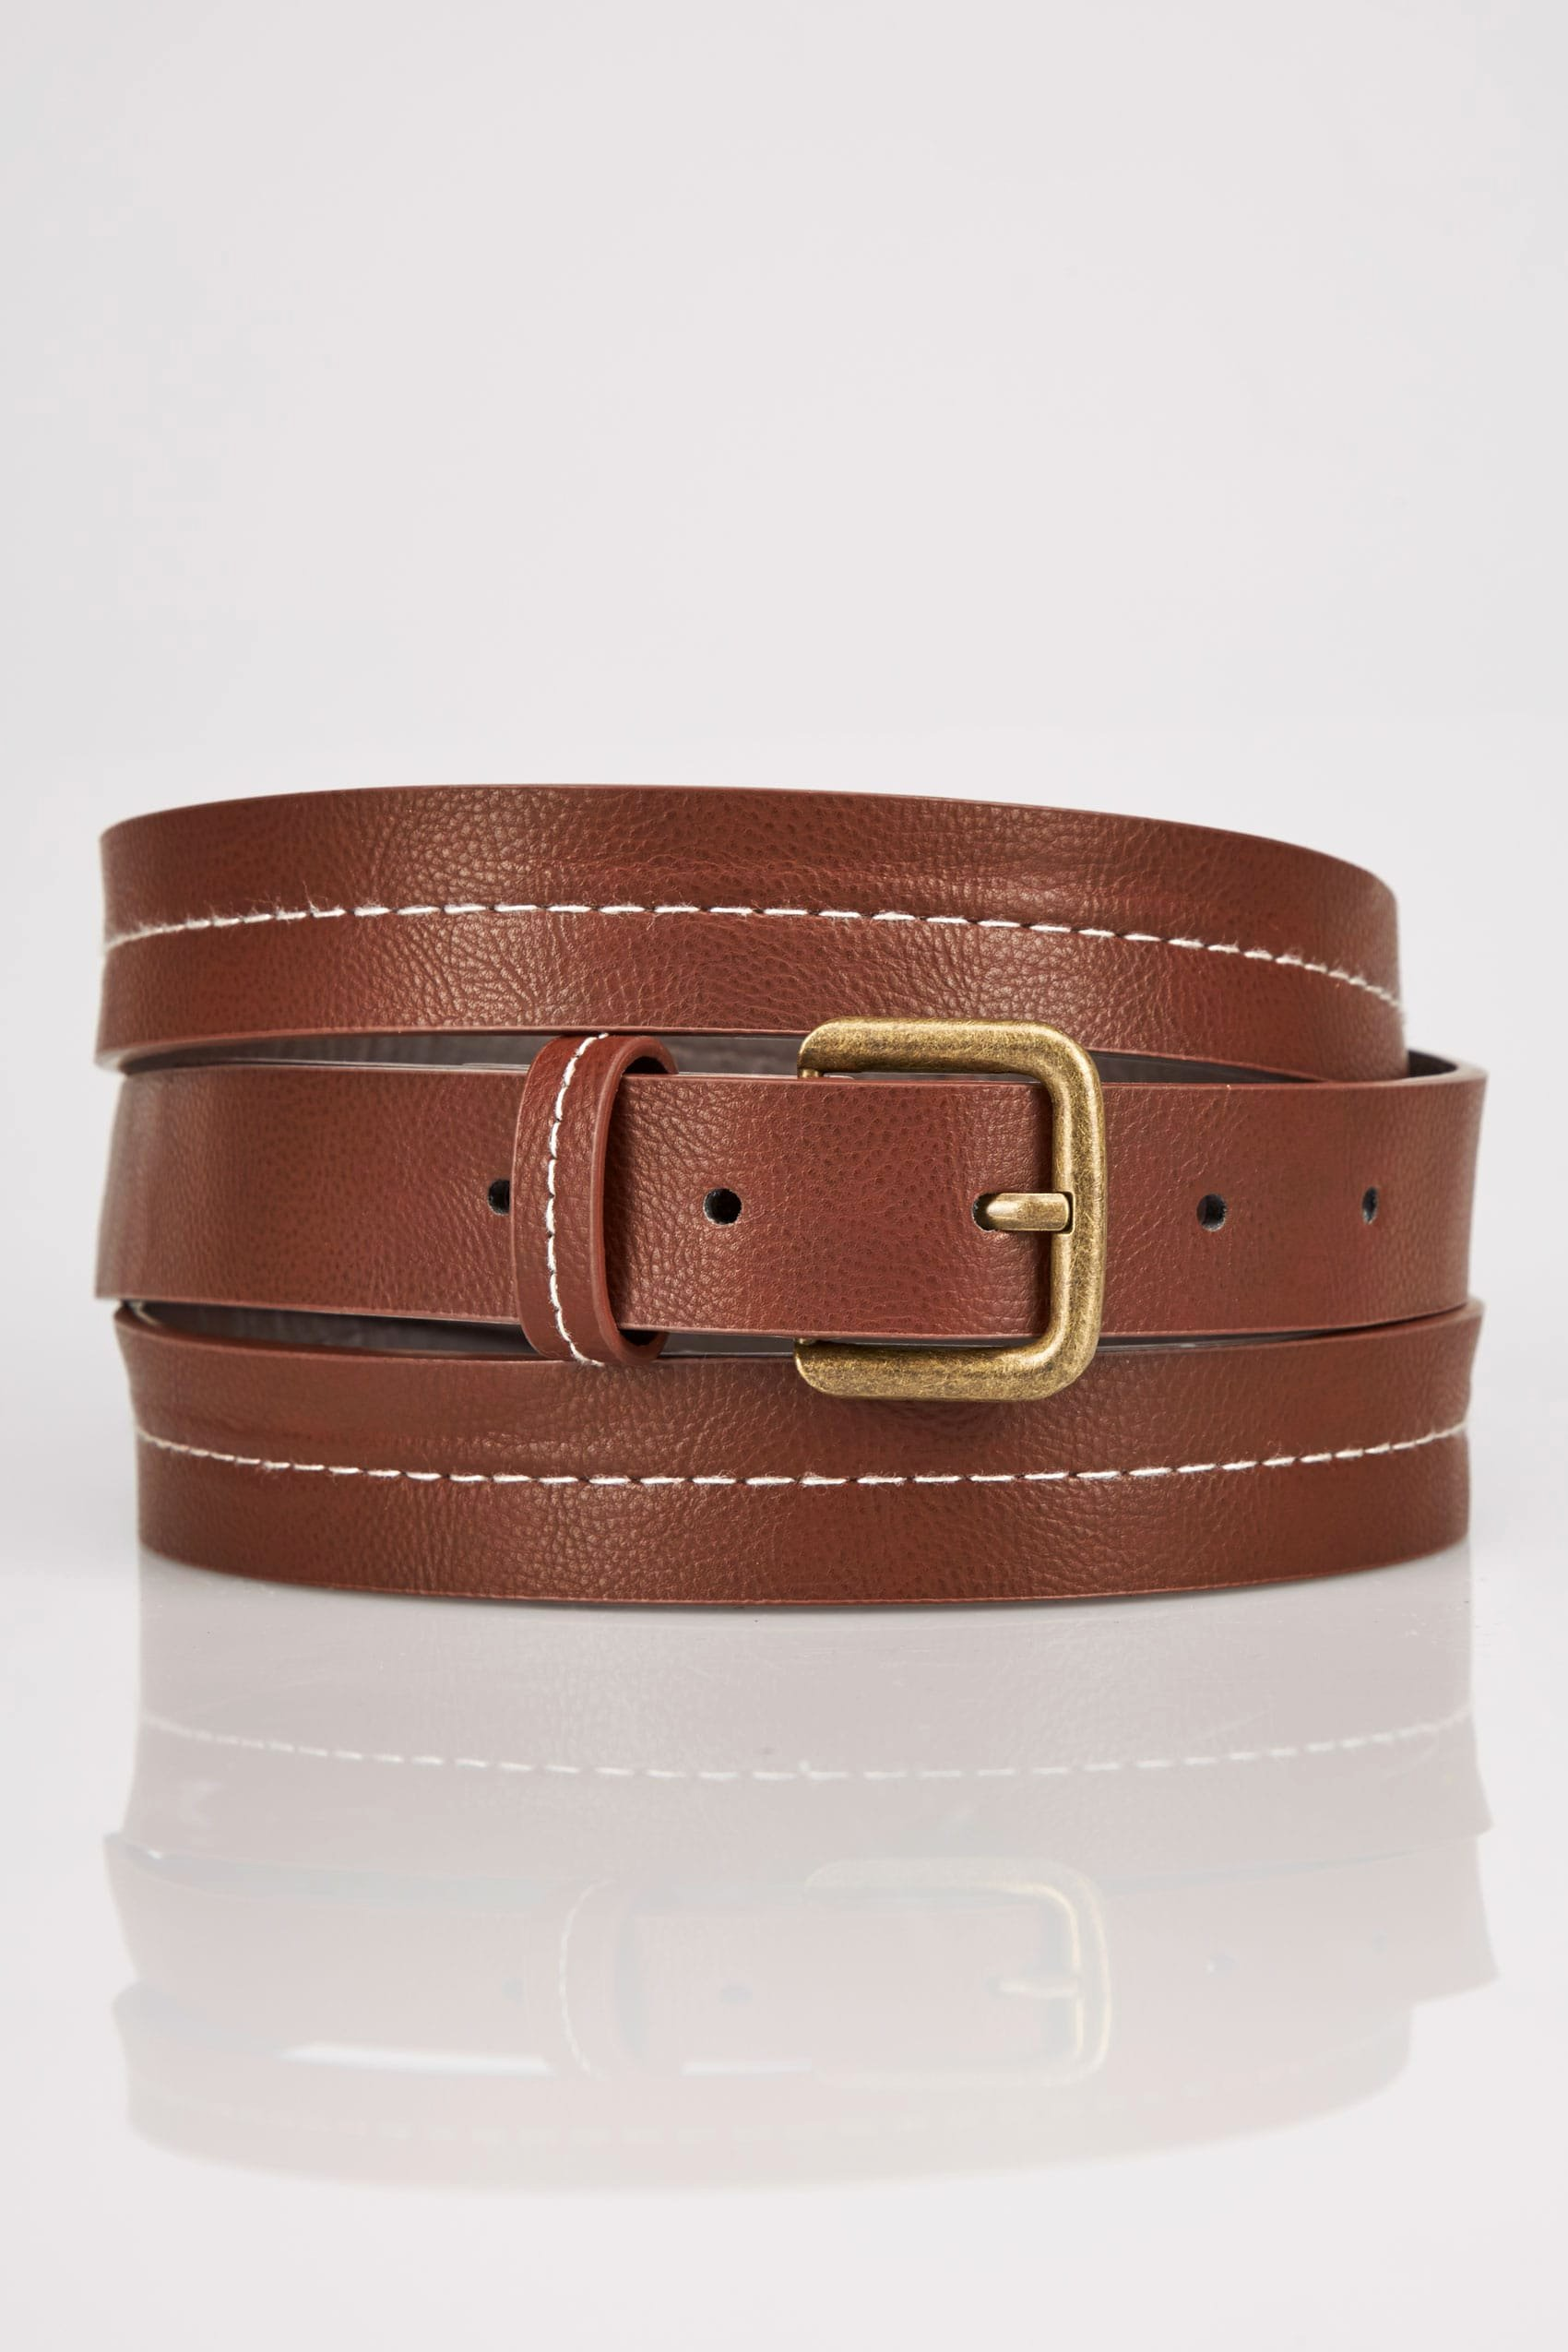 No Return Policy Template Lovely Tan Stitched Belt with Pin Buckle Fastening Plus Size 16